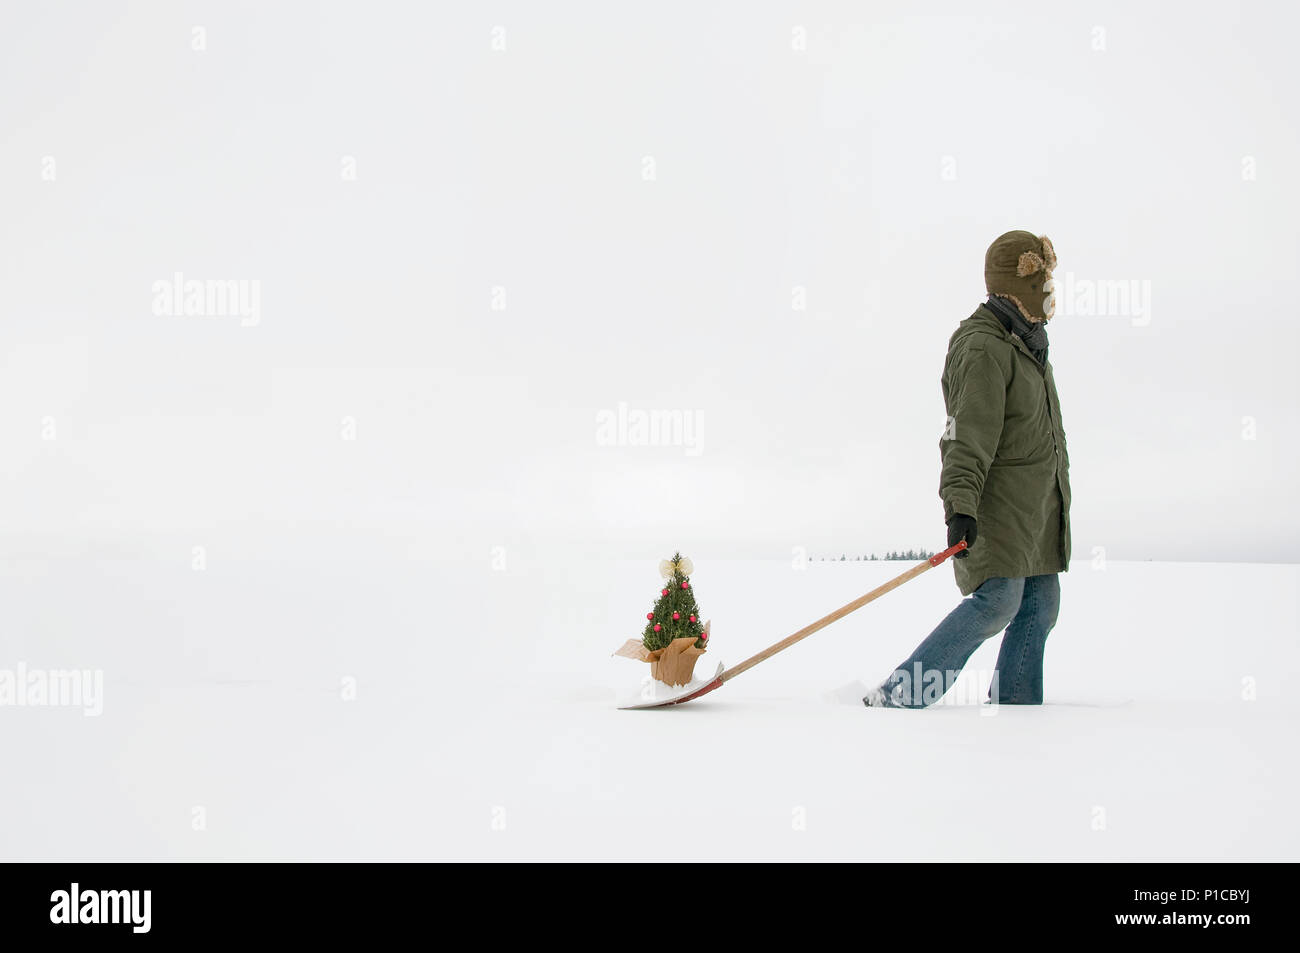 A person trudging through the snow pulling a christmas decorated rosemary bush tree behind them in a wintery landscape. Stock Photo